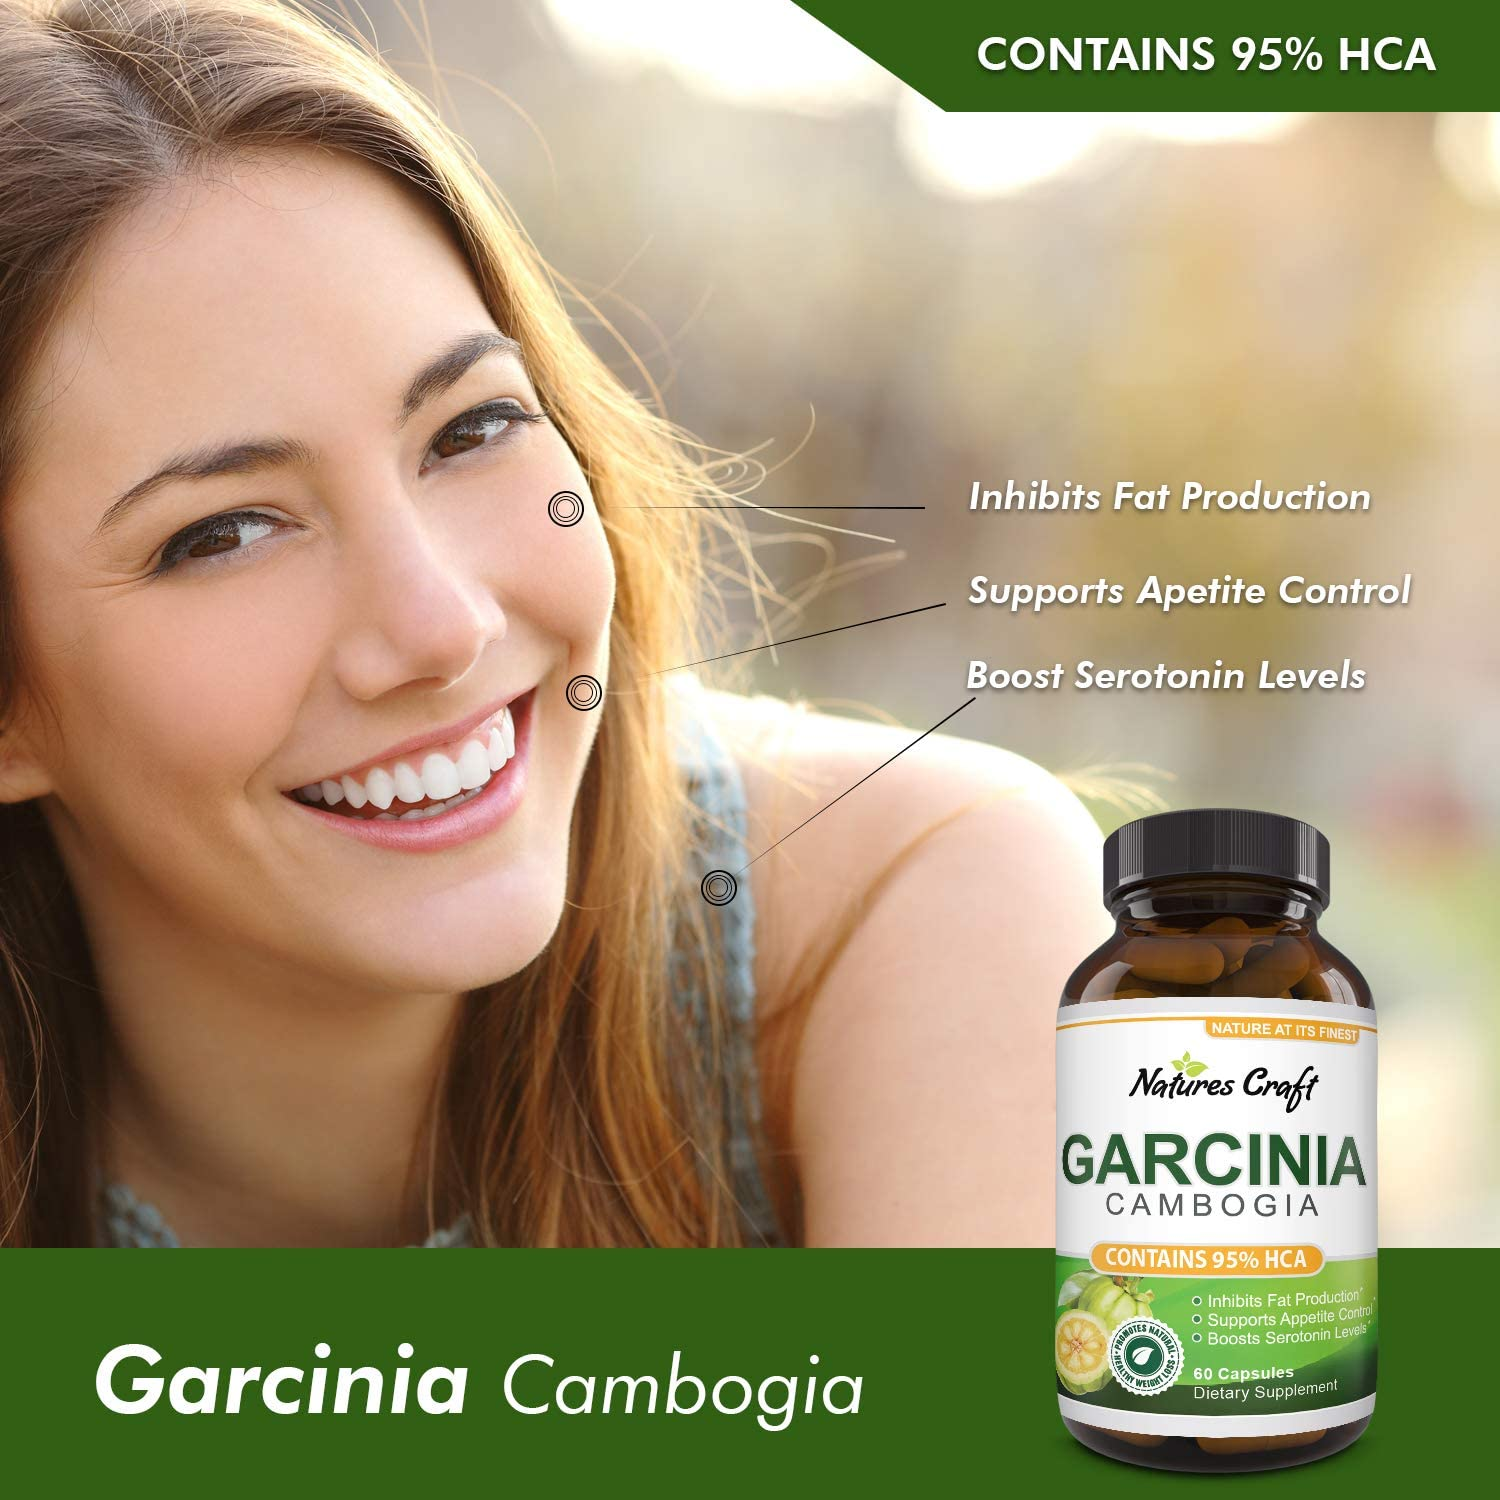 Garcinia Cambogia with 95% HCA Weight Loss Supplement - Best Fast Acting Fat Burner and Natural Carb Blocker Diet Pills - Pure Garcinia Extract Appetite Suppressant for Men & Women